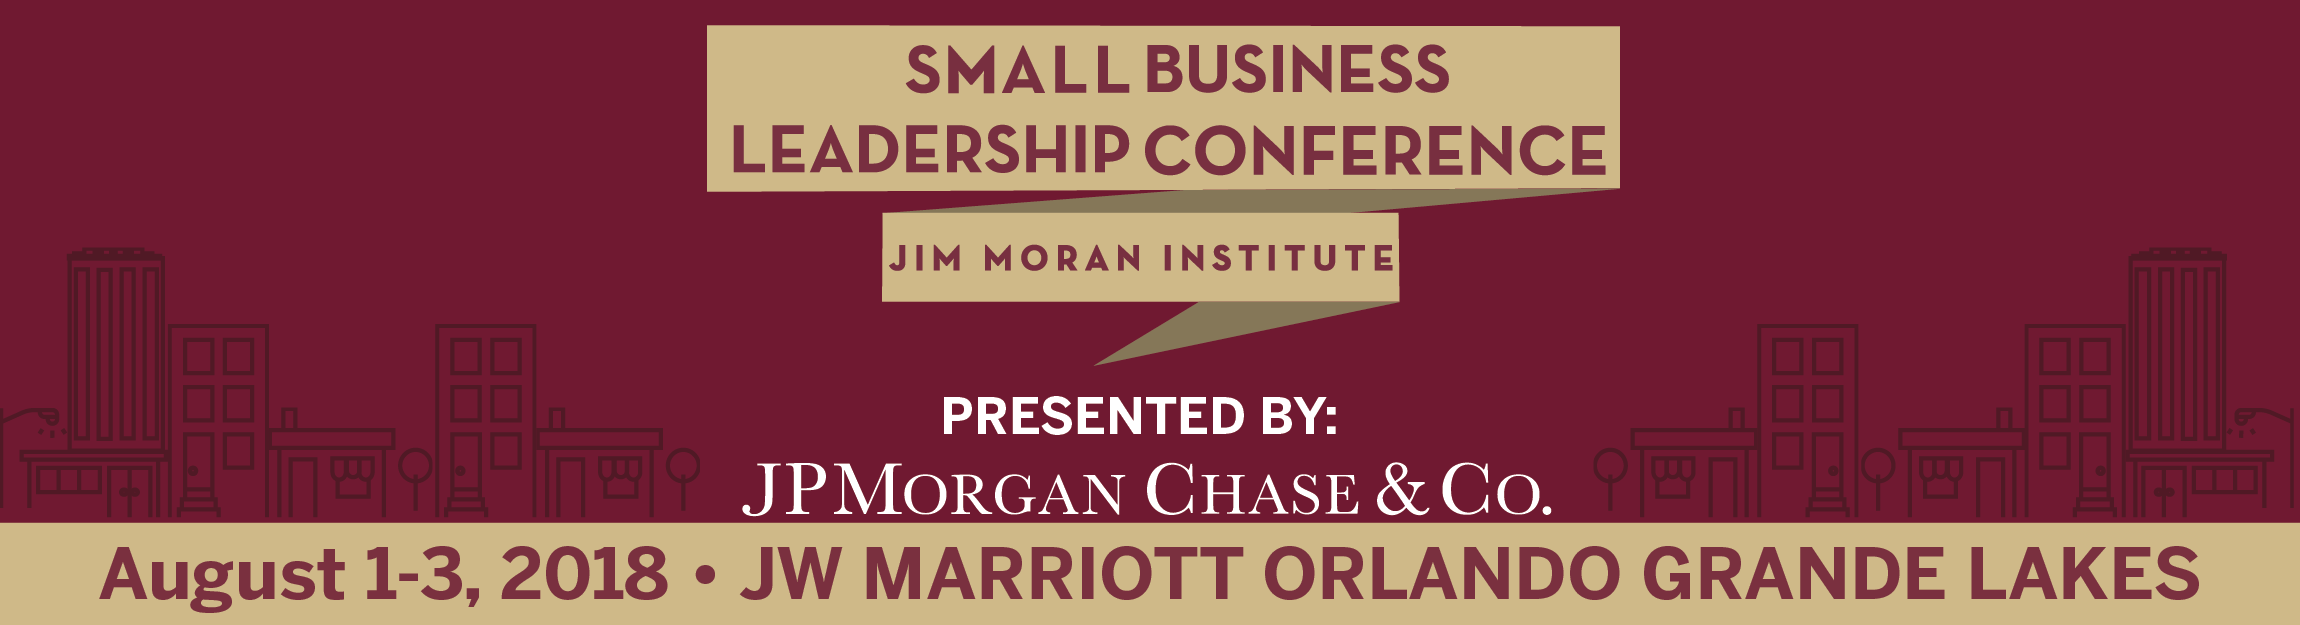 JMI Small Business Leadership Conference, 2018